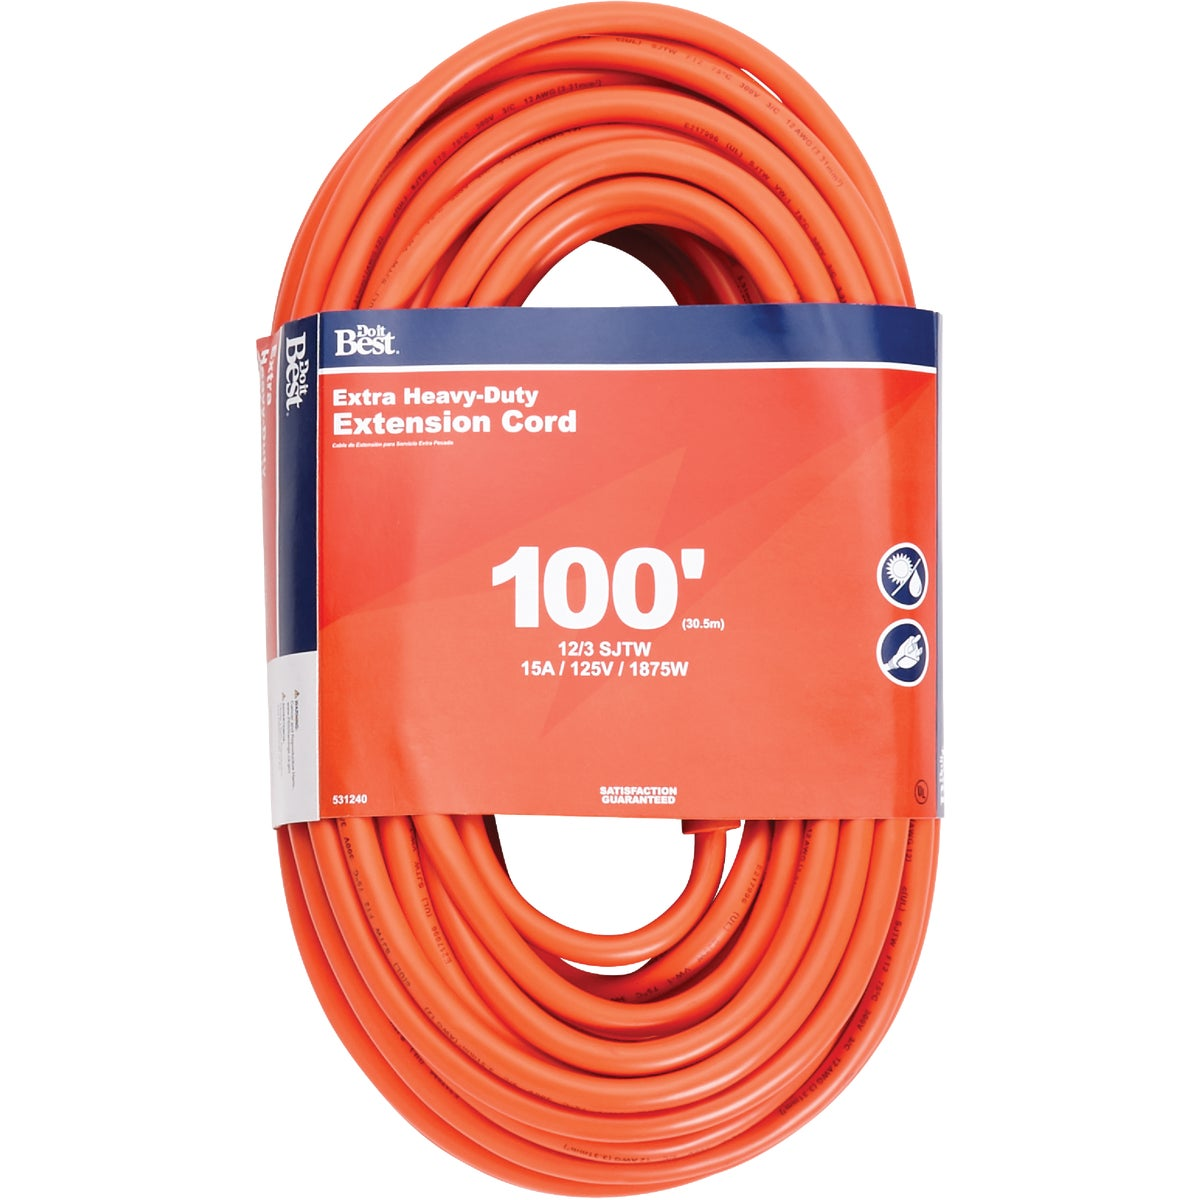 100' 12/3 OUTDOOR CORD - 550530 by Coleman Cable Import